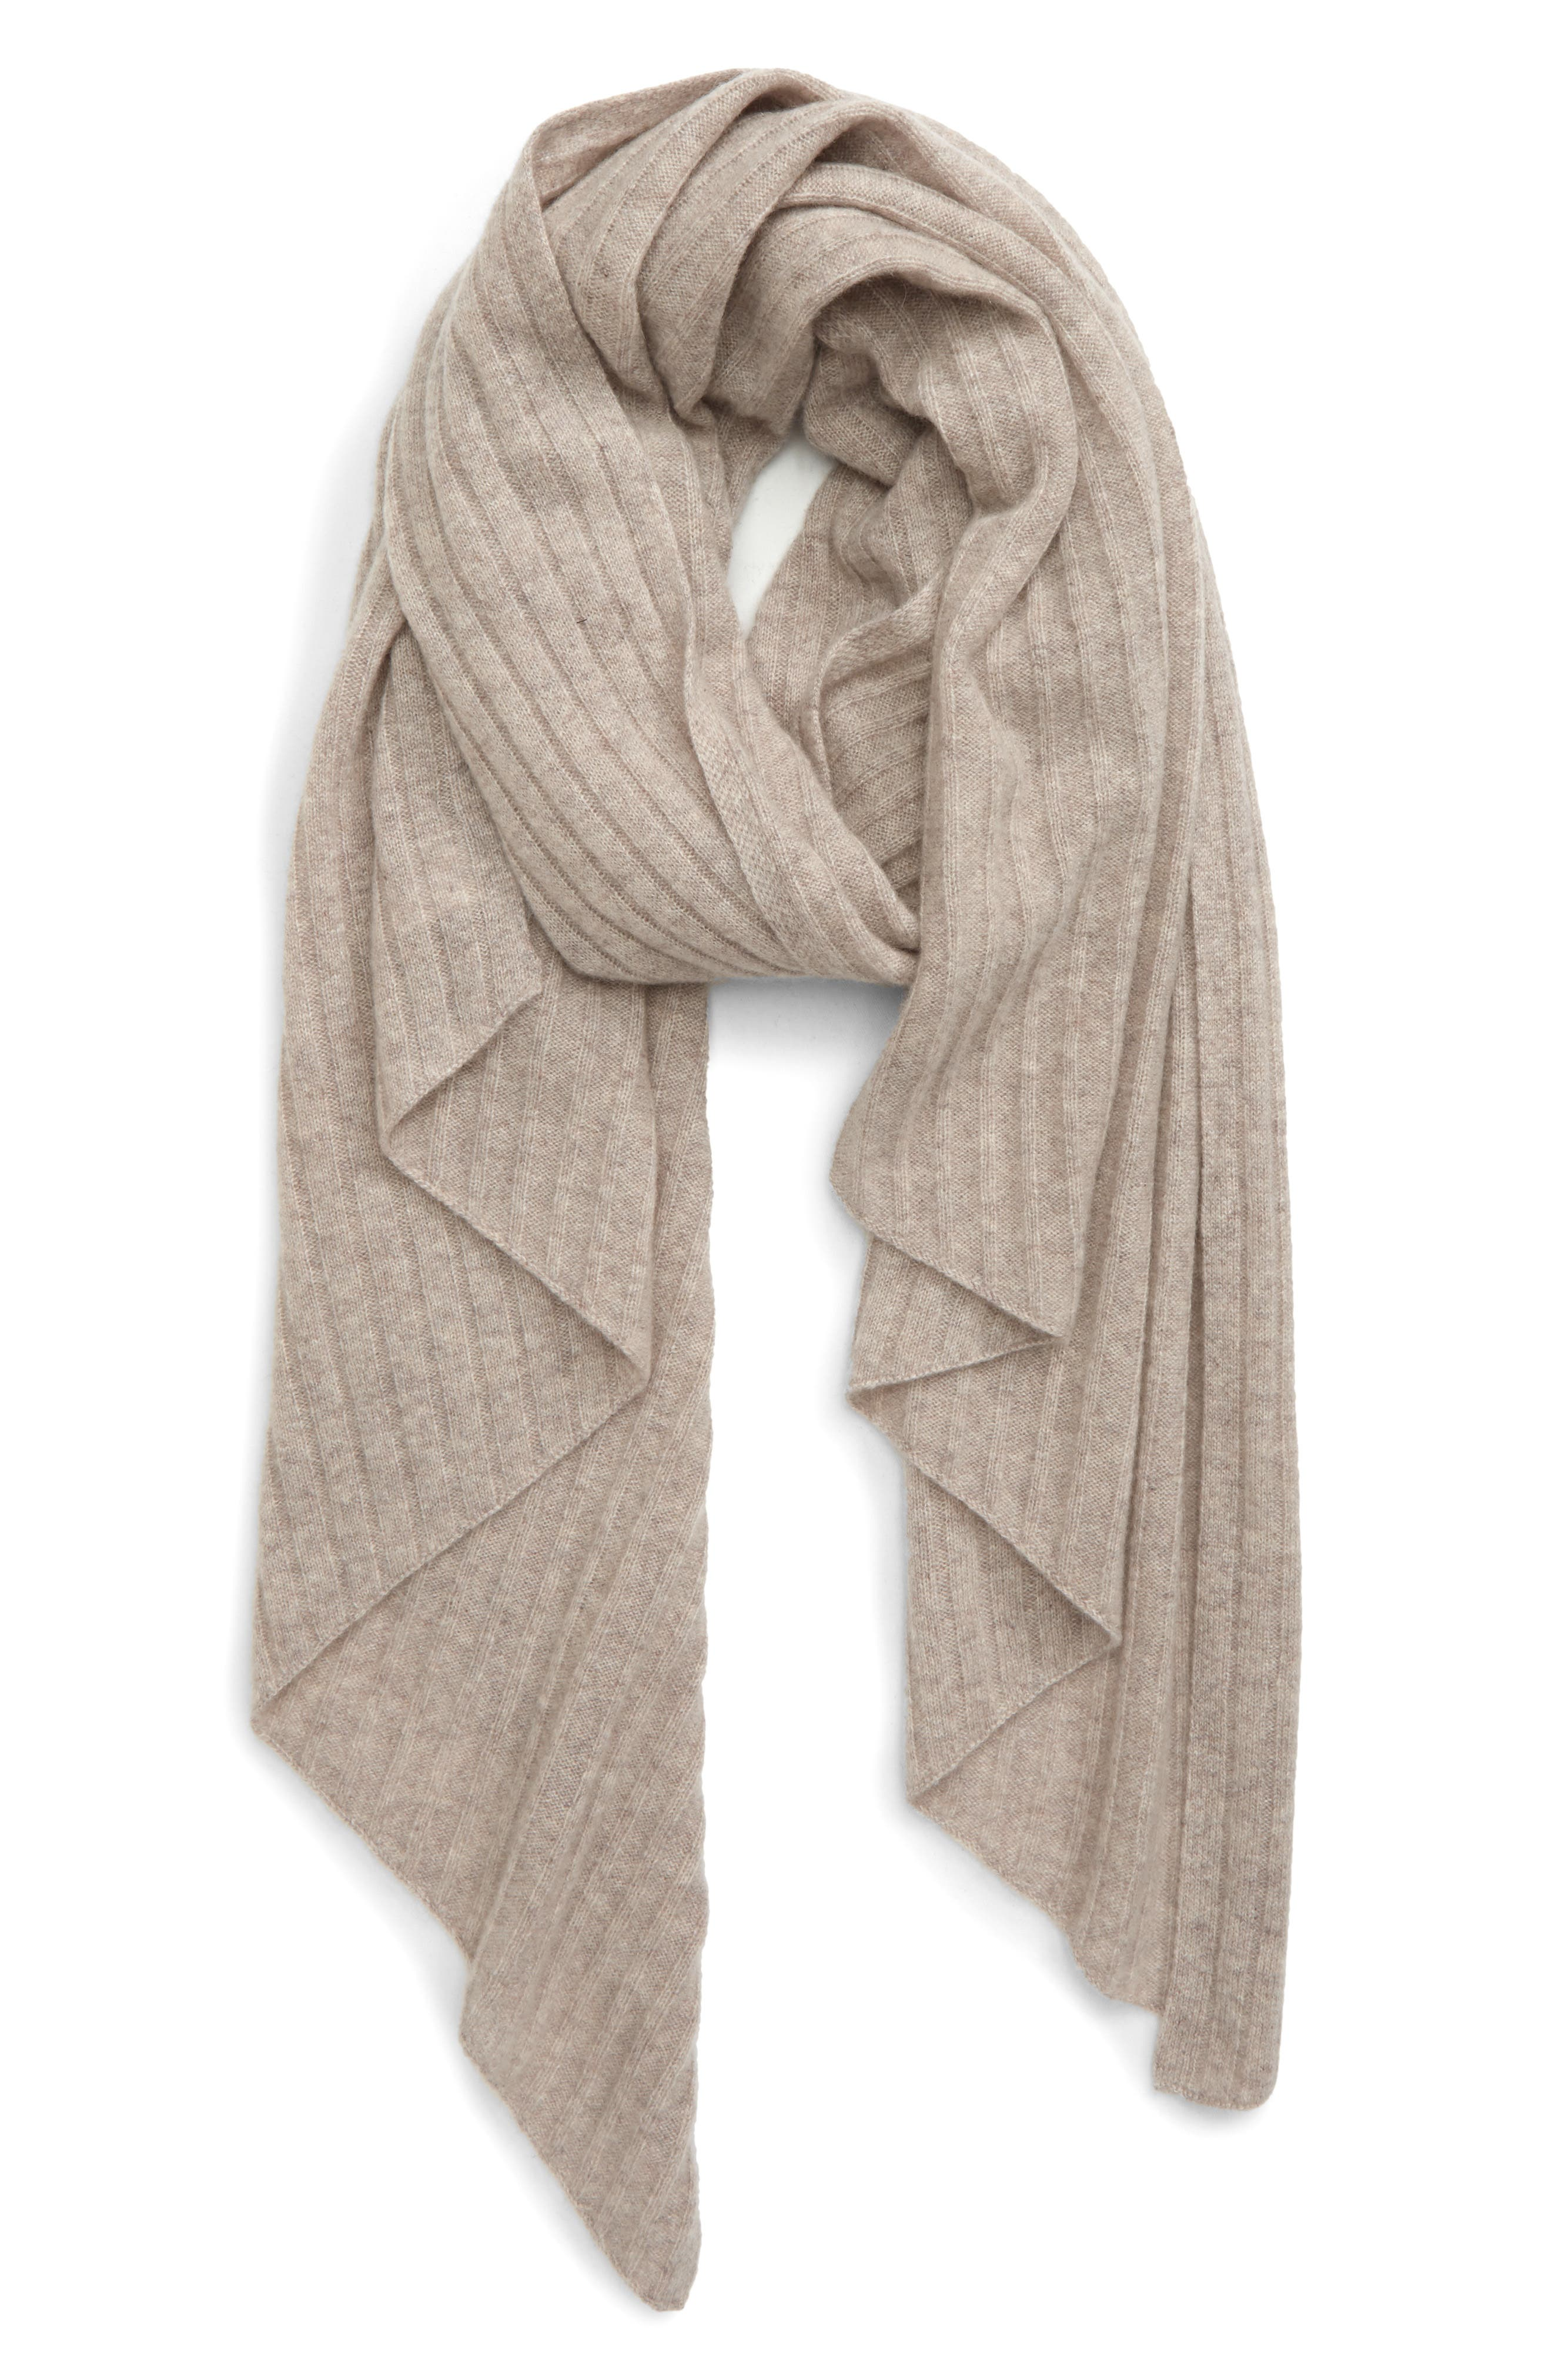 The parallelogram shape enhances the elegant drape of this ribbed scarf knit from luxurious cashmere. Style Name: Halogen Diagonal Rib Cashmere Scarf. Style Number: 6018085. Available in stores.